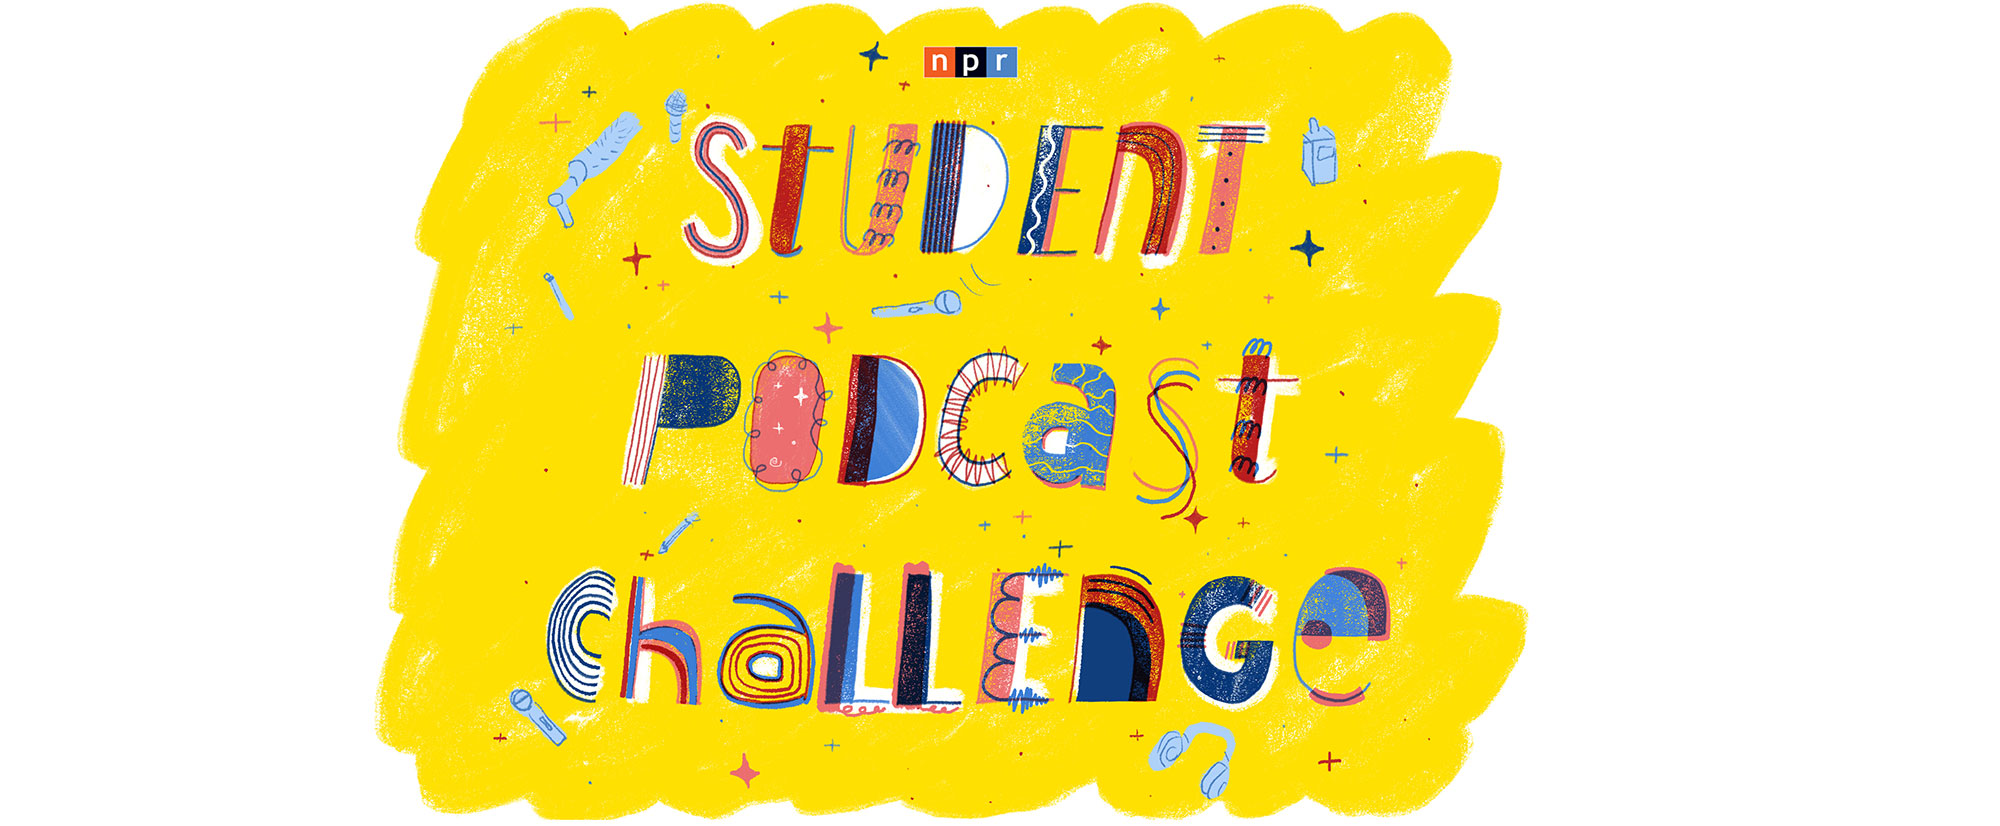 NPR Student Podcast Challenge multi-colored text with yellow background